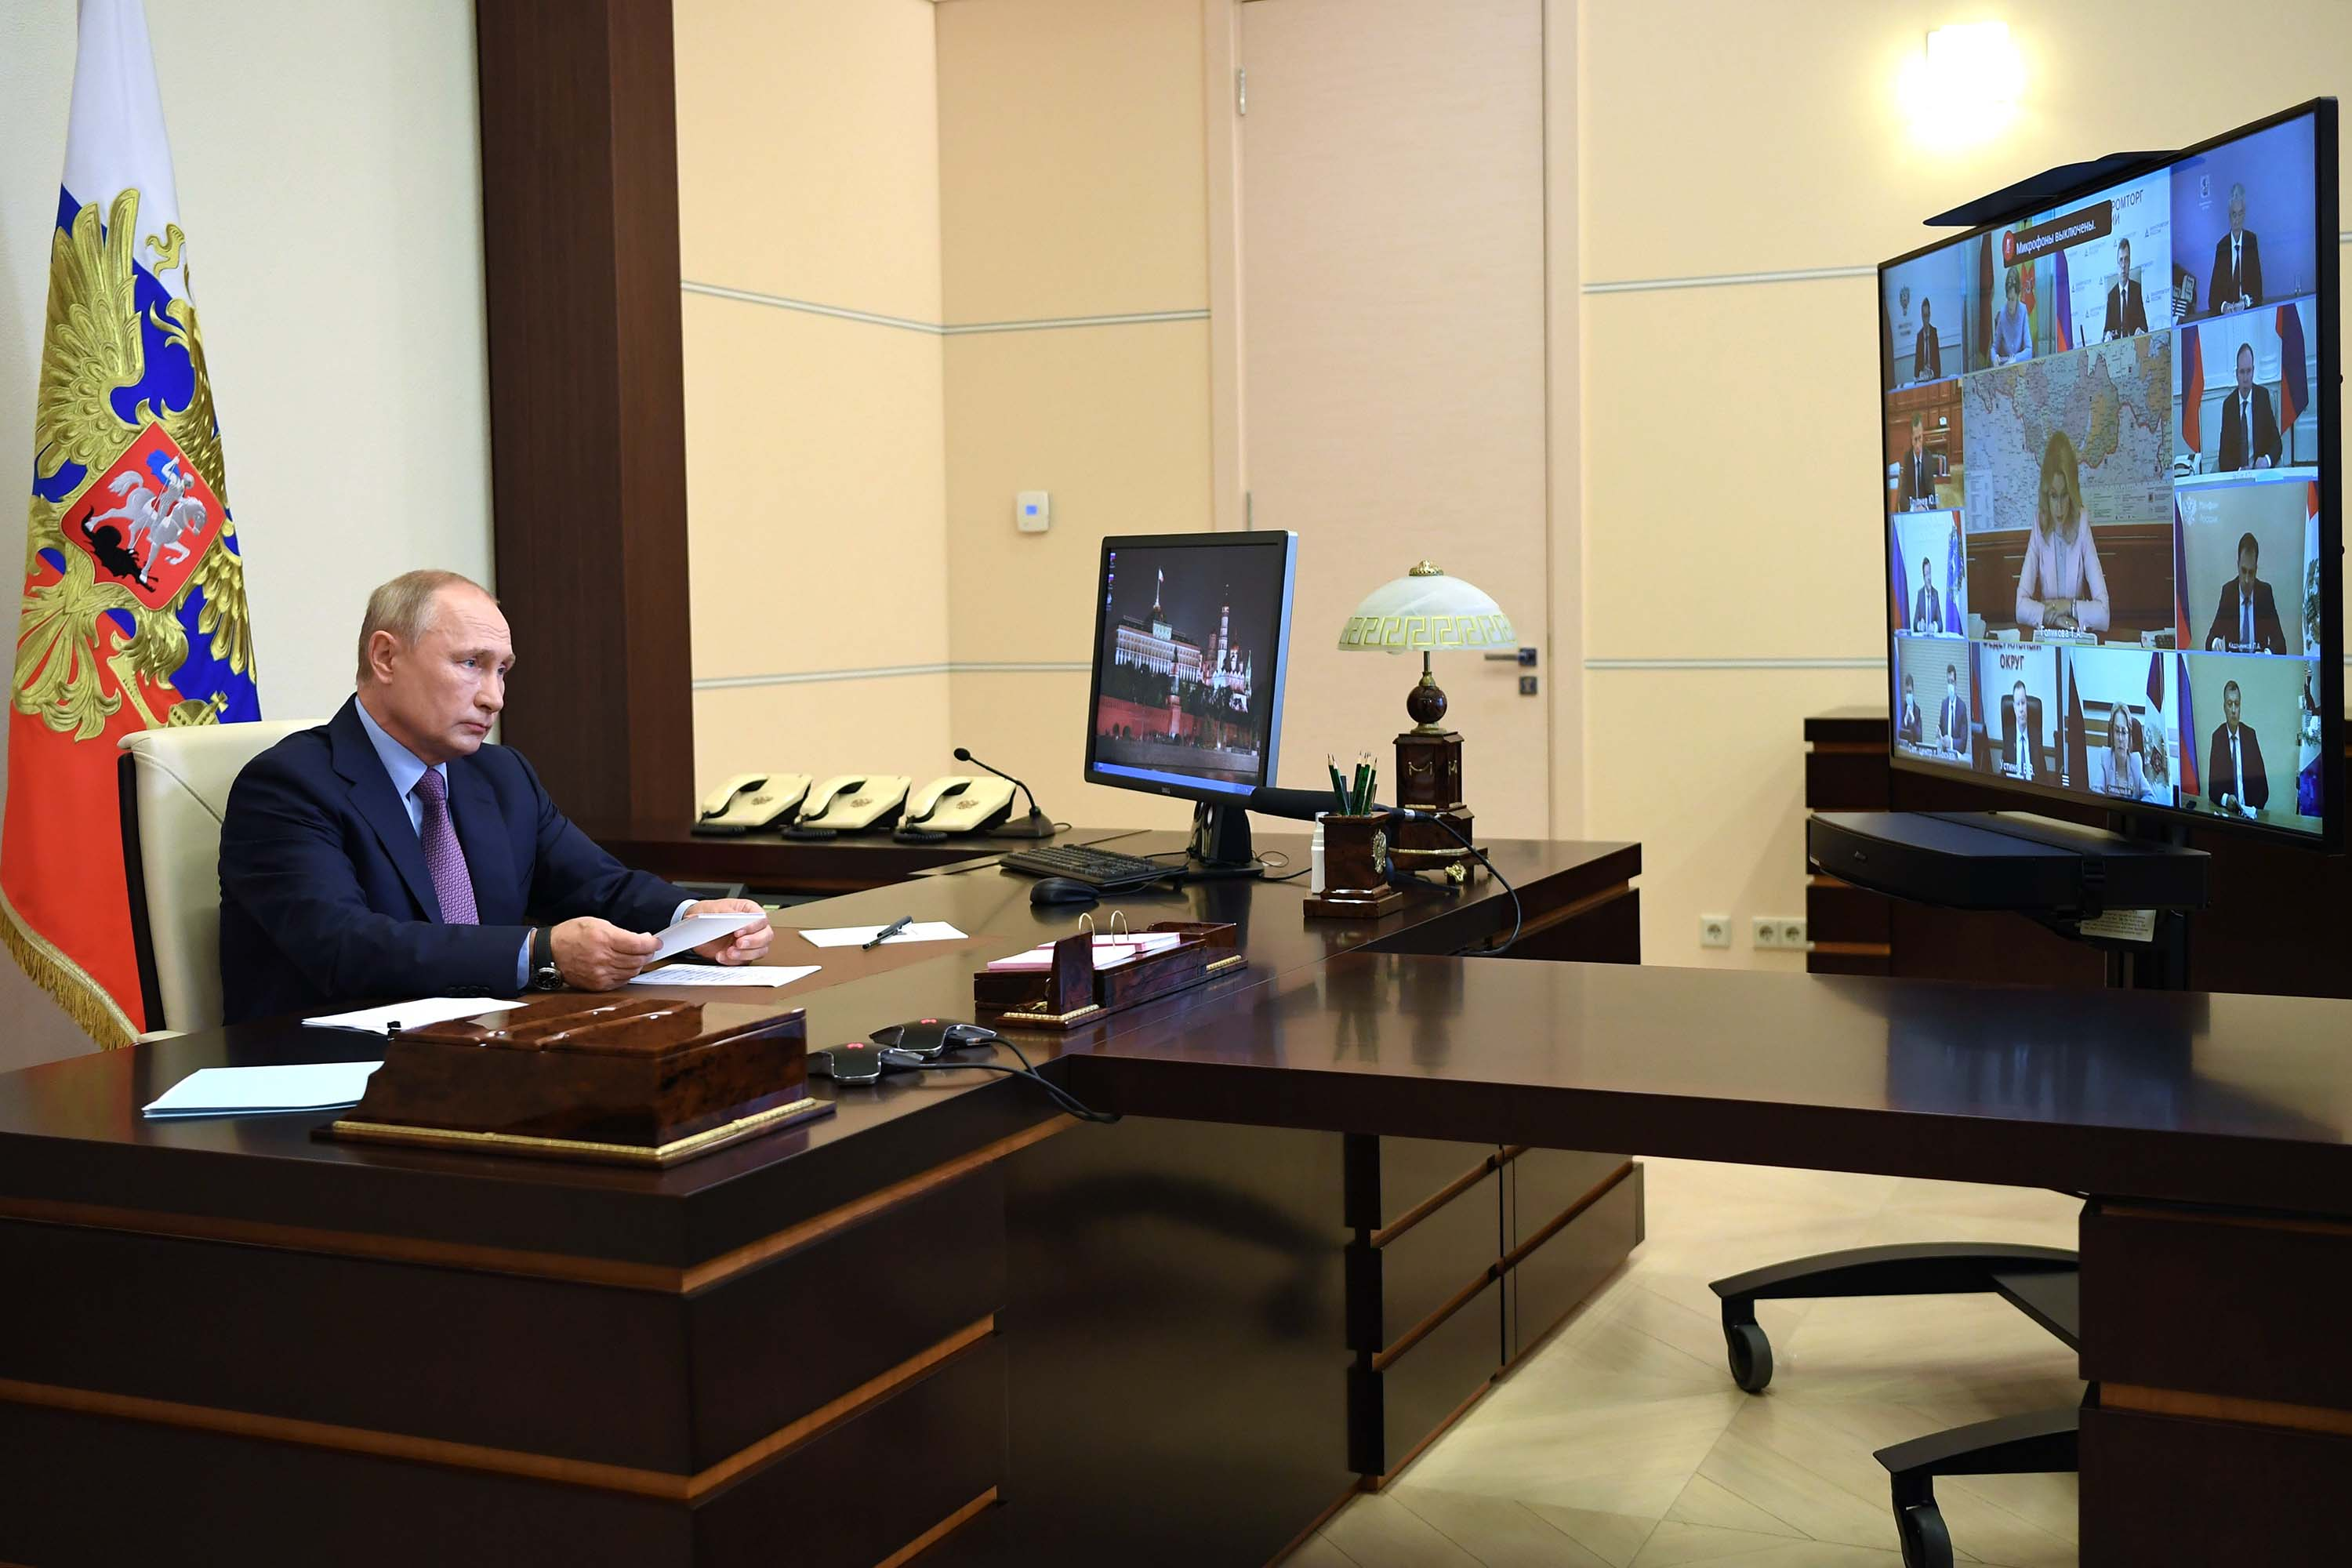 Russia's President Vladimir Putin chairs a government meeting via videoconference from his office in the Novo-Ogaryovo residence in Moscow, on July 29.